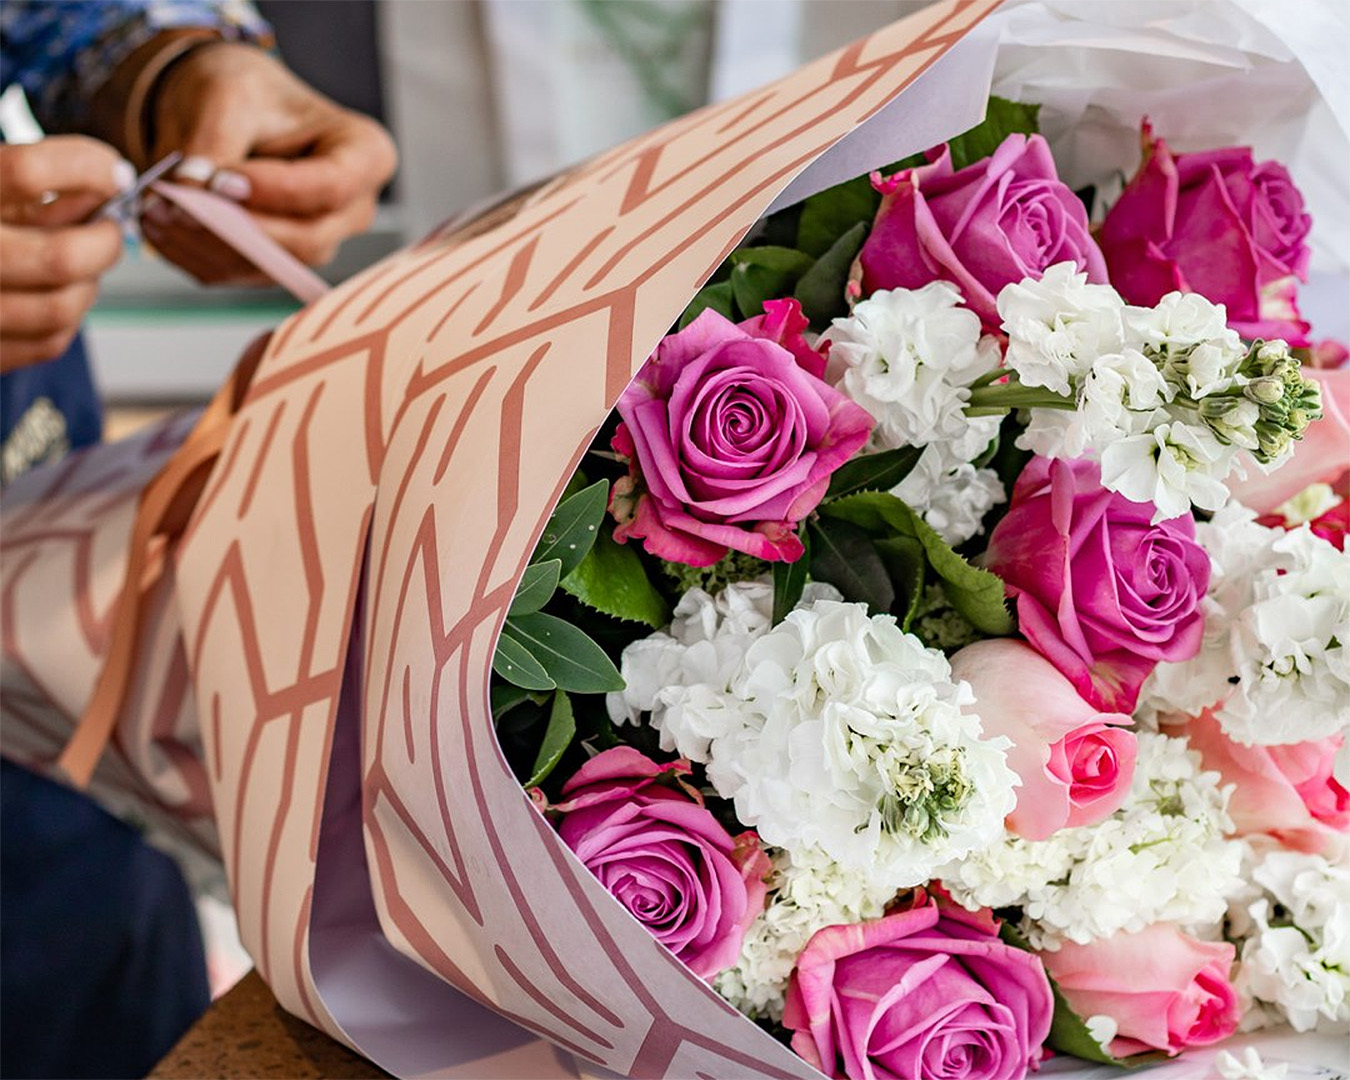 Someone adds the finishing touches to a lovely bouquet from Flowers after hours.